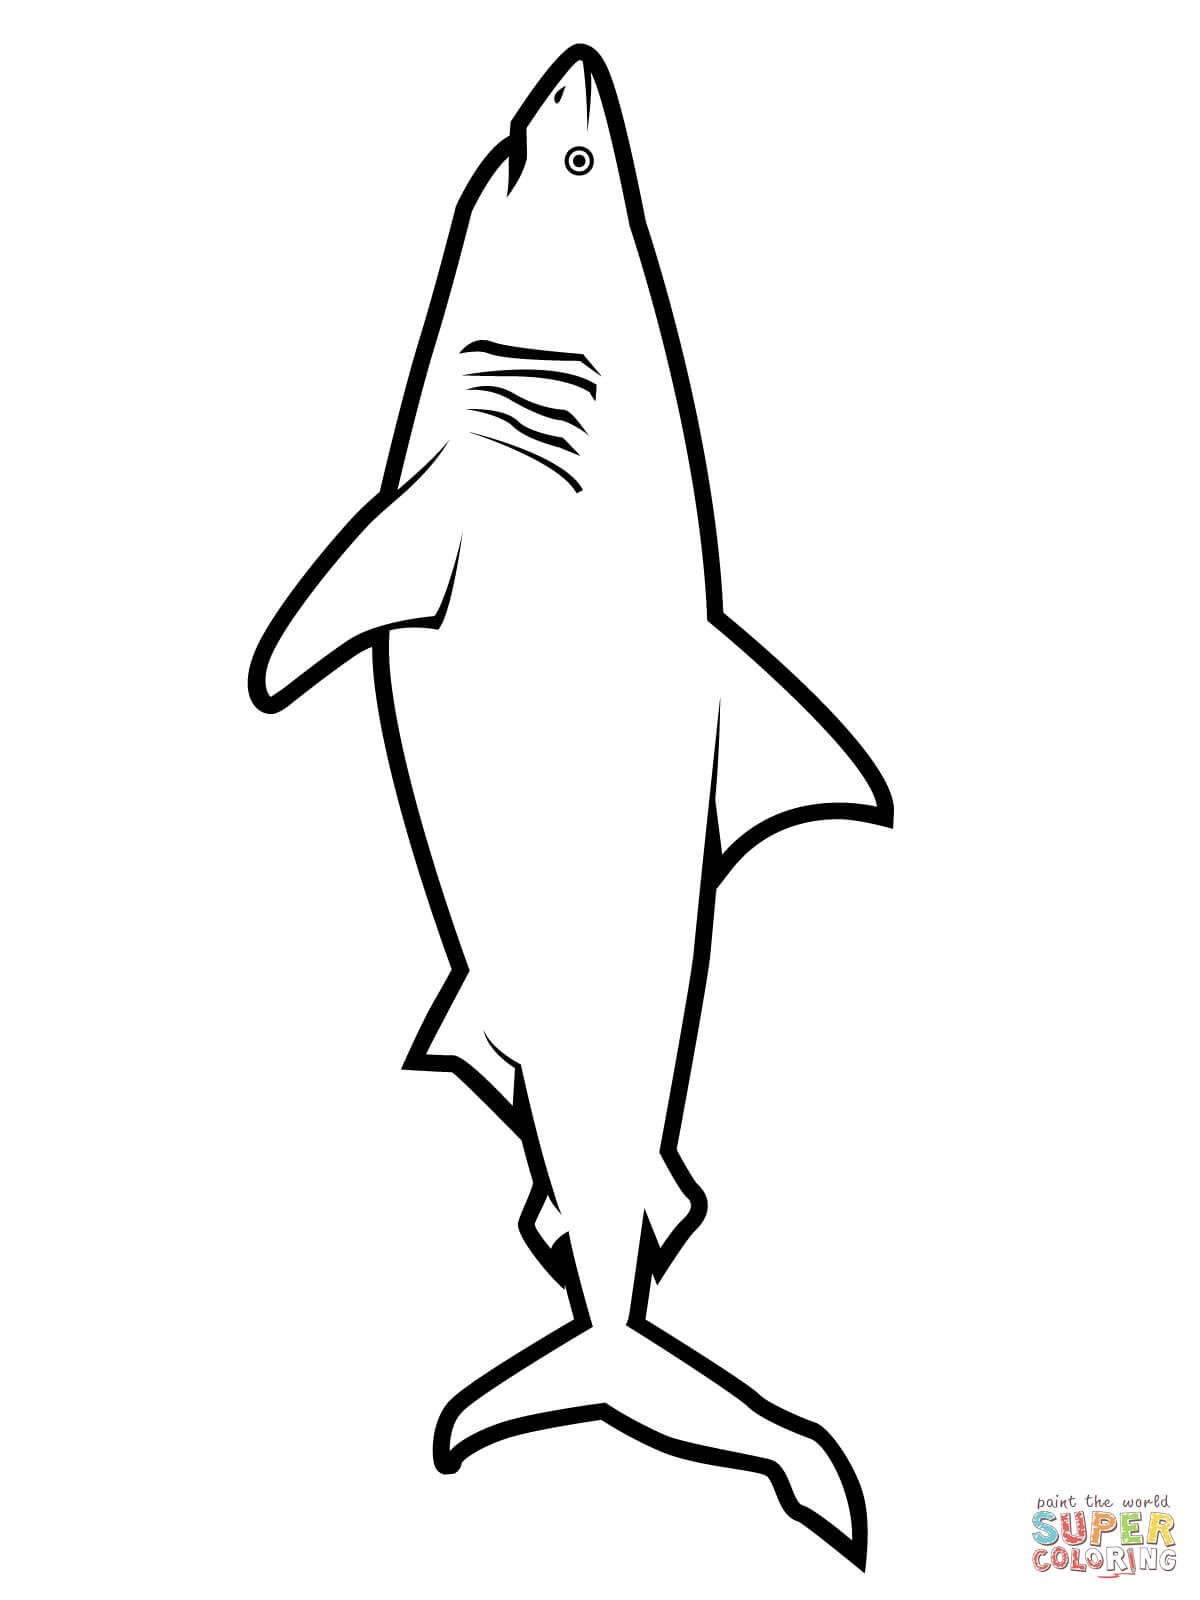 great white shark coloring sheet great white shark drawing at getdrawings free download coloring great sheet shark white